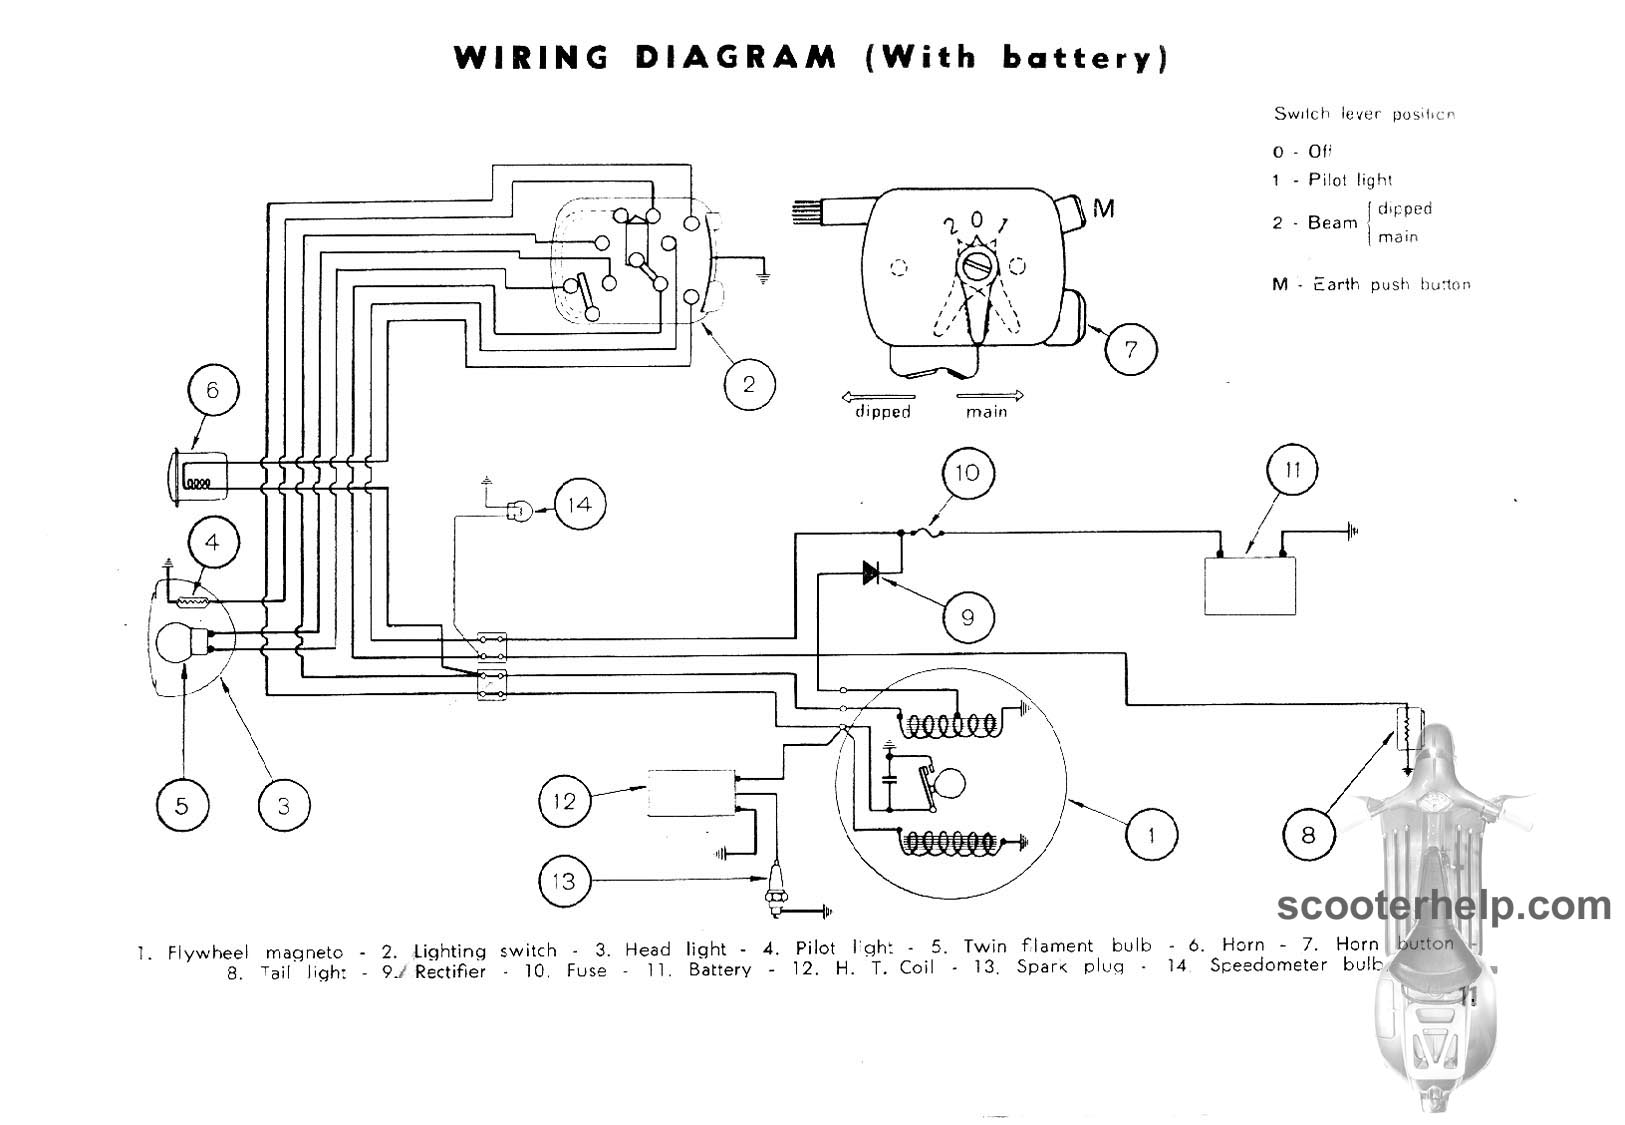 page11 lambretta 150 ld owner's manual lambretta series 2 wiring diagram at crackthecode.co